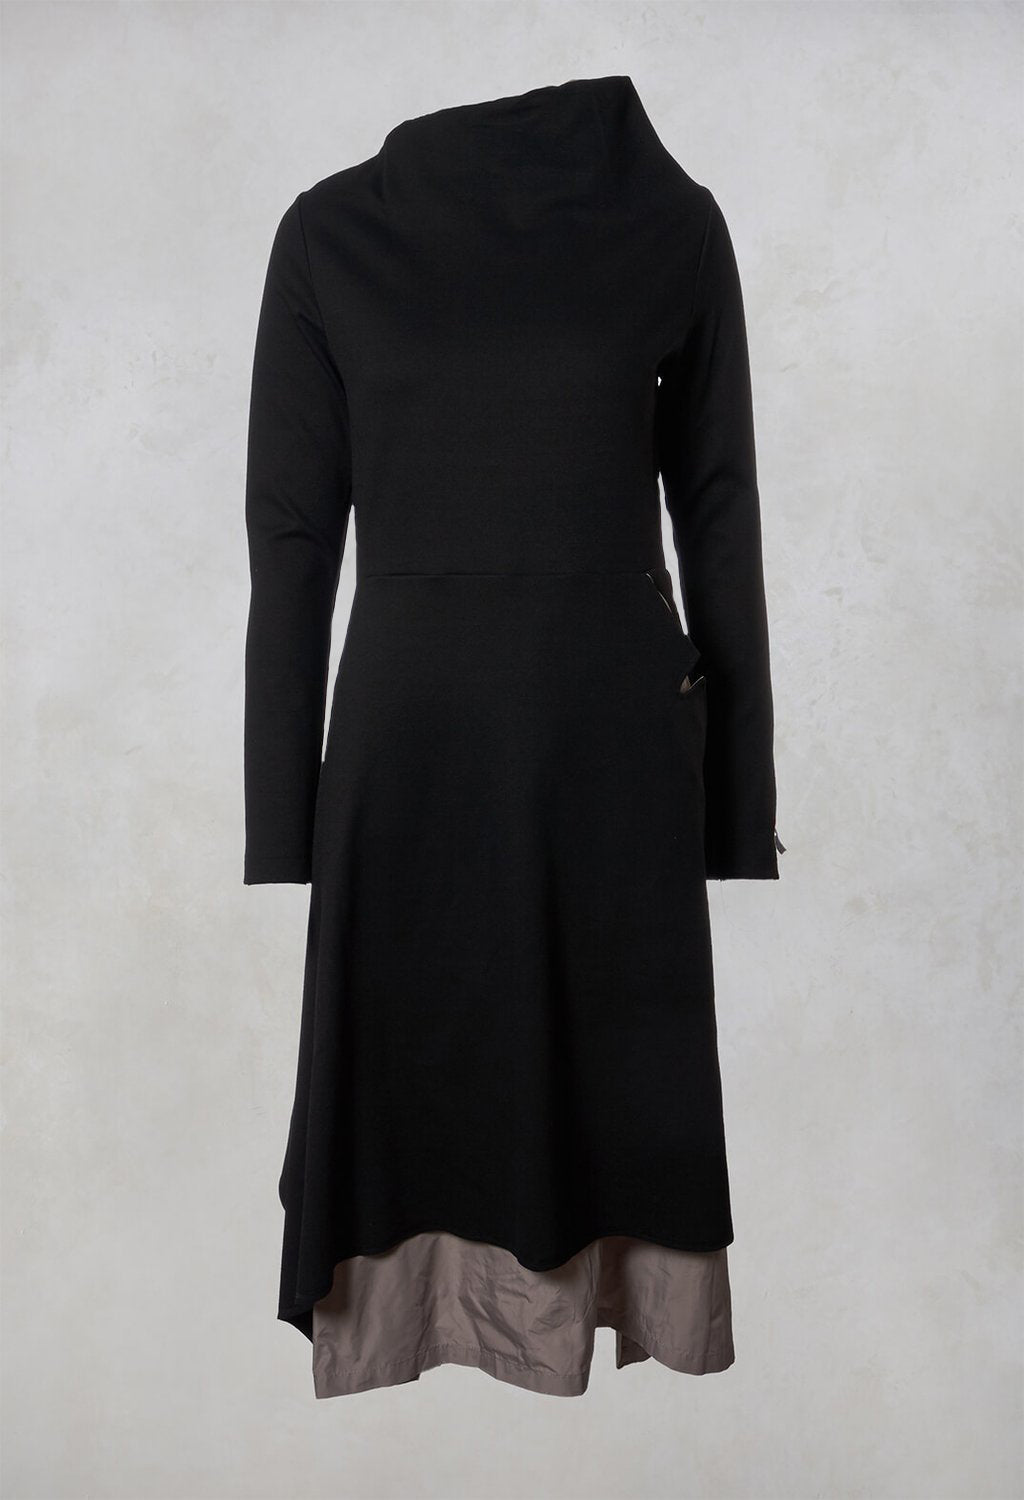 A Line Dress in Black / Beige